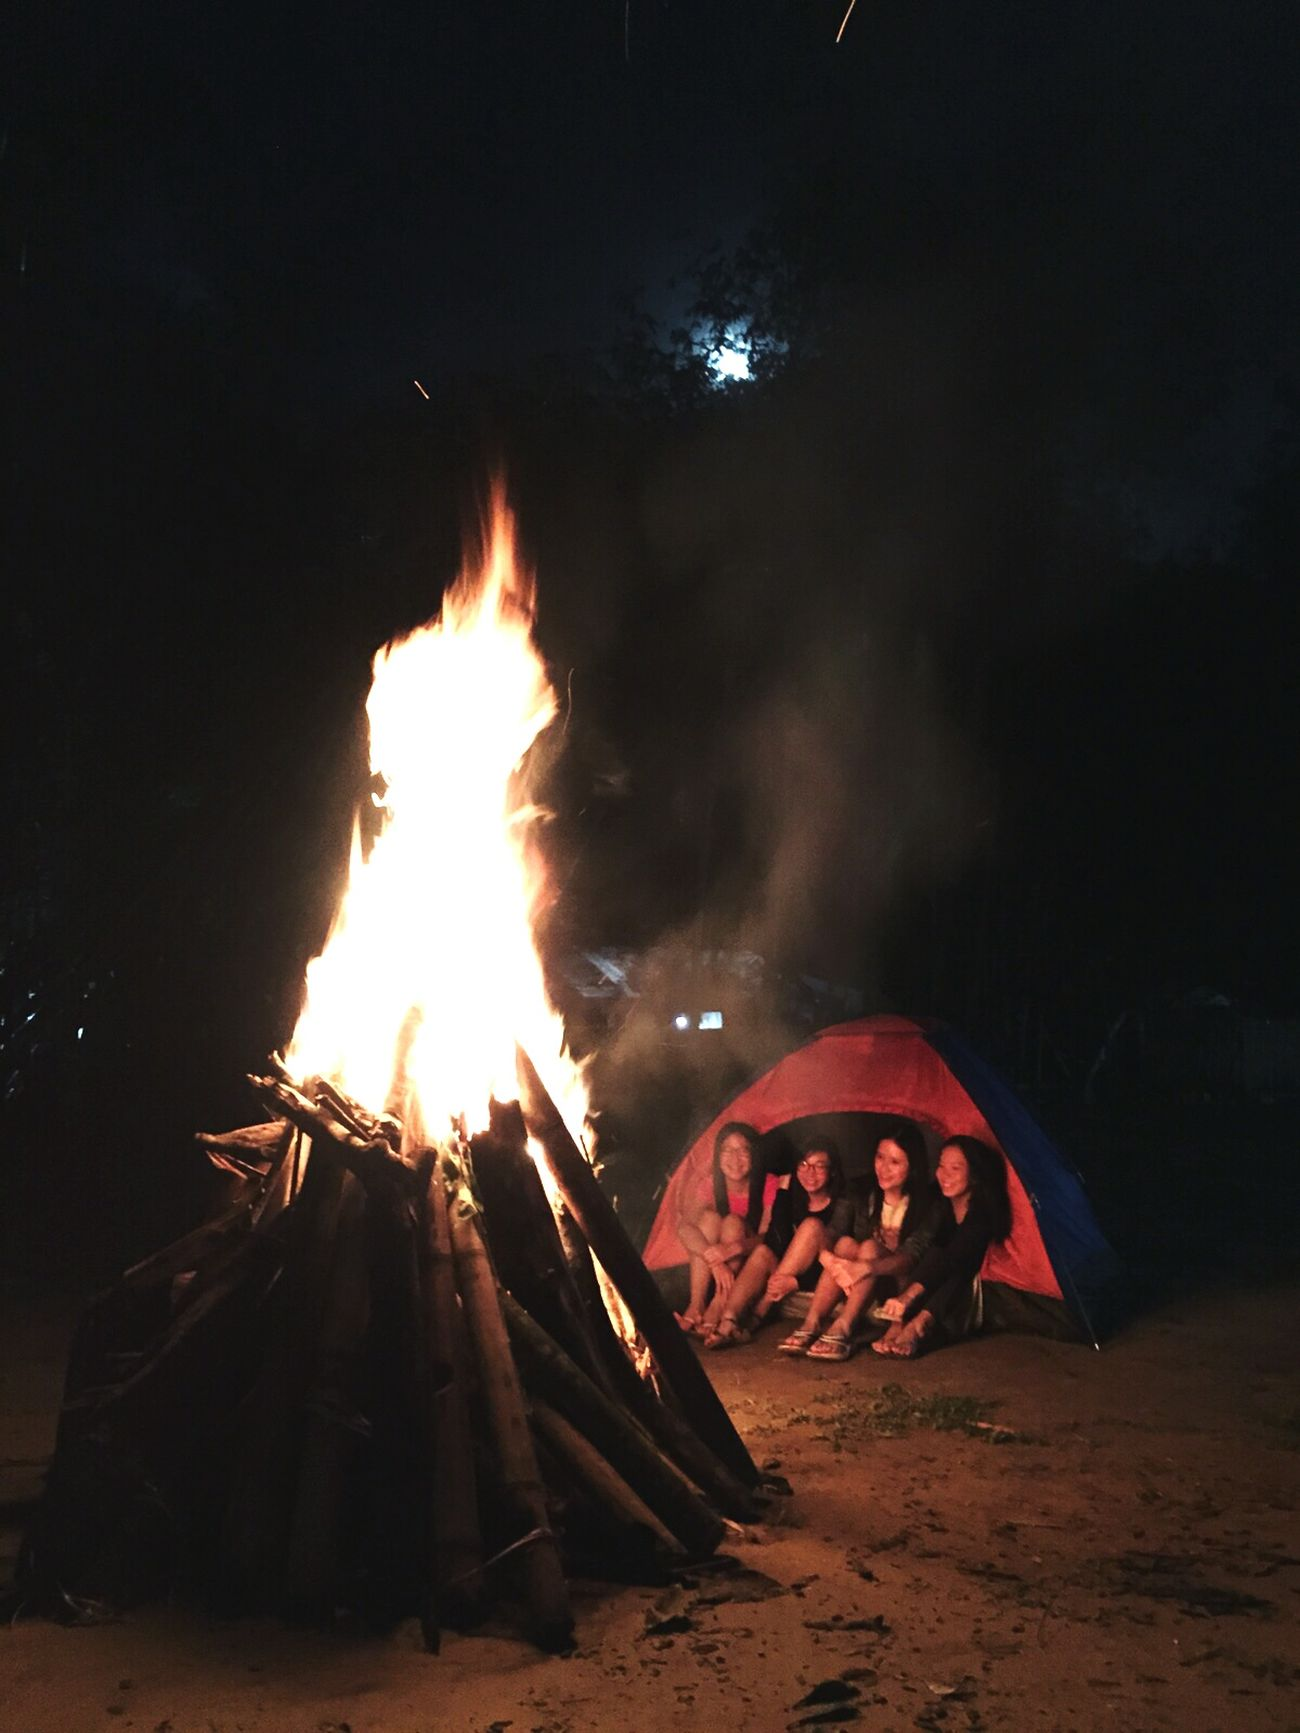 Campfire#nature# Girls Tent Full Moon Night